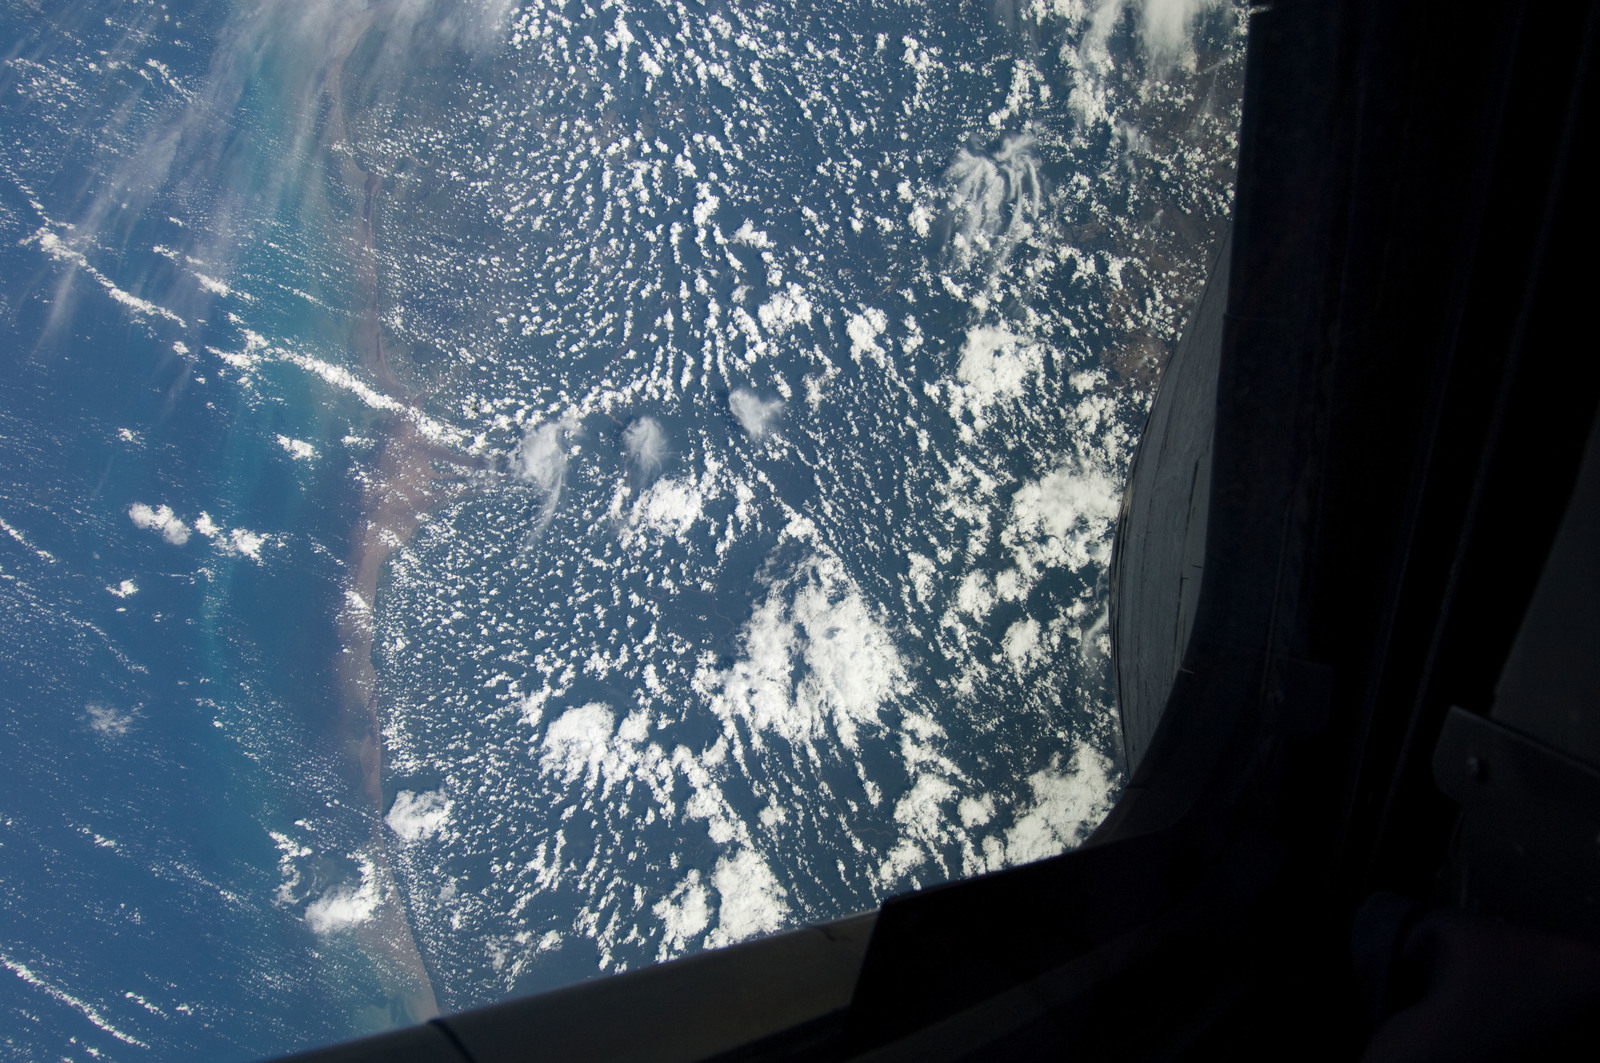 s133E006921 - STS-133 - Earth Observation taken by the STS-133 crew